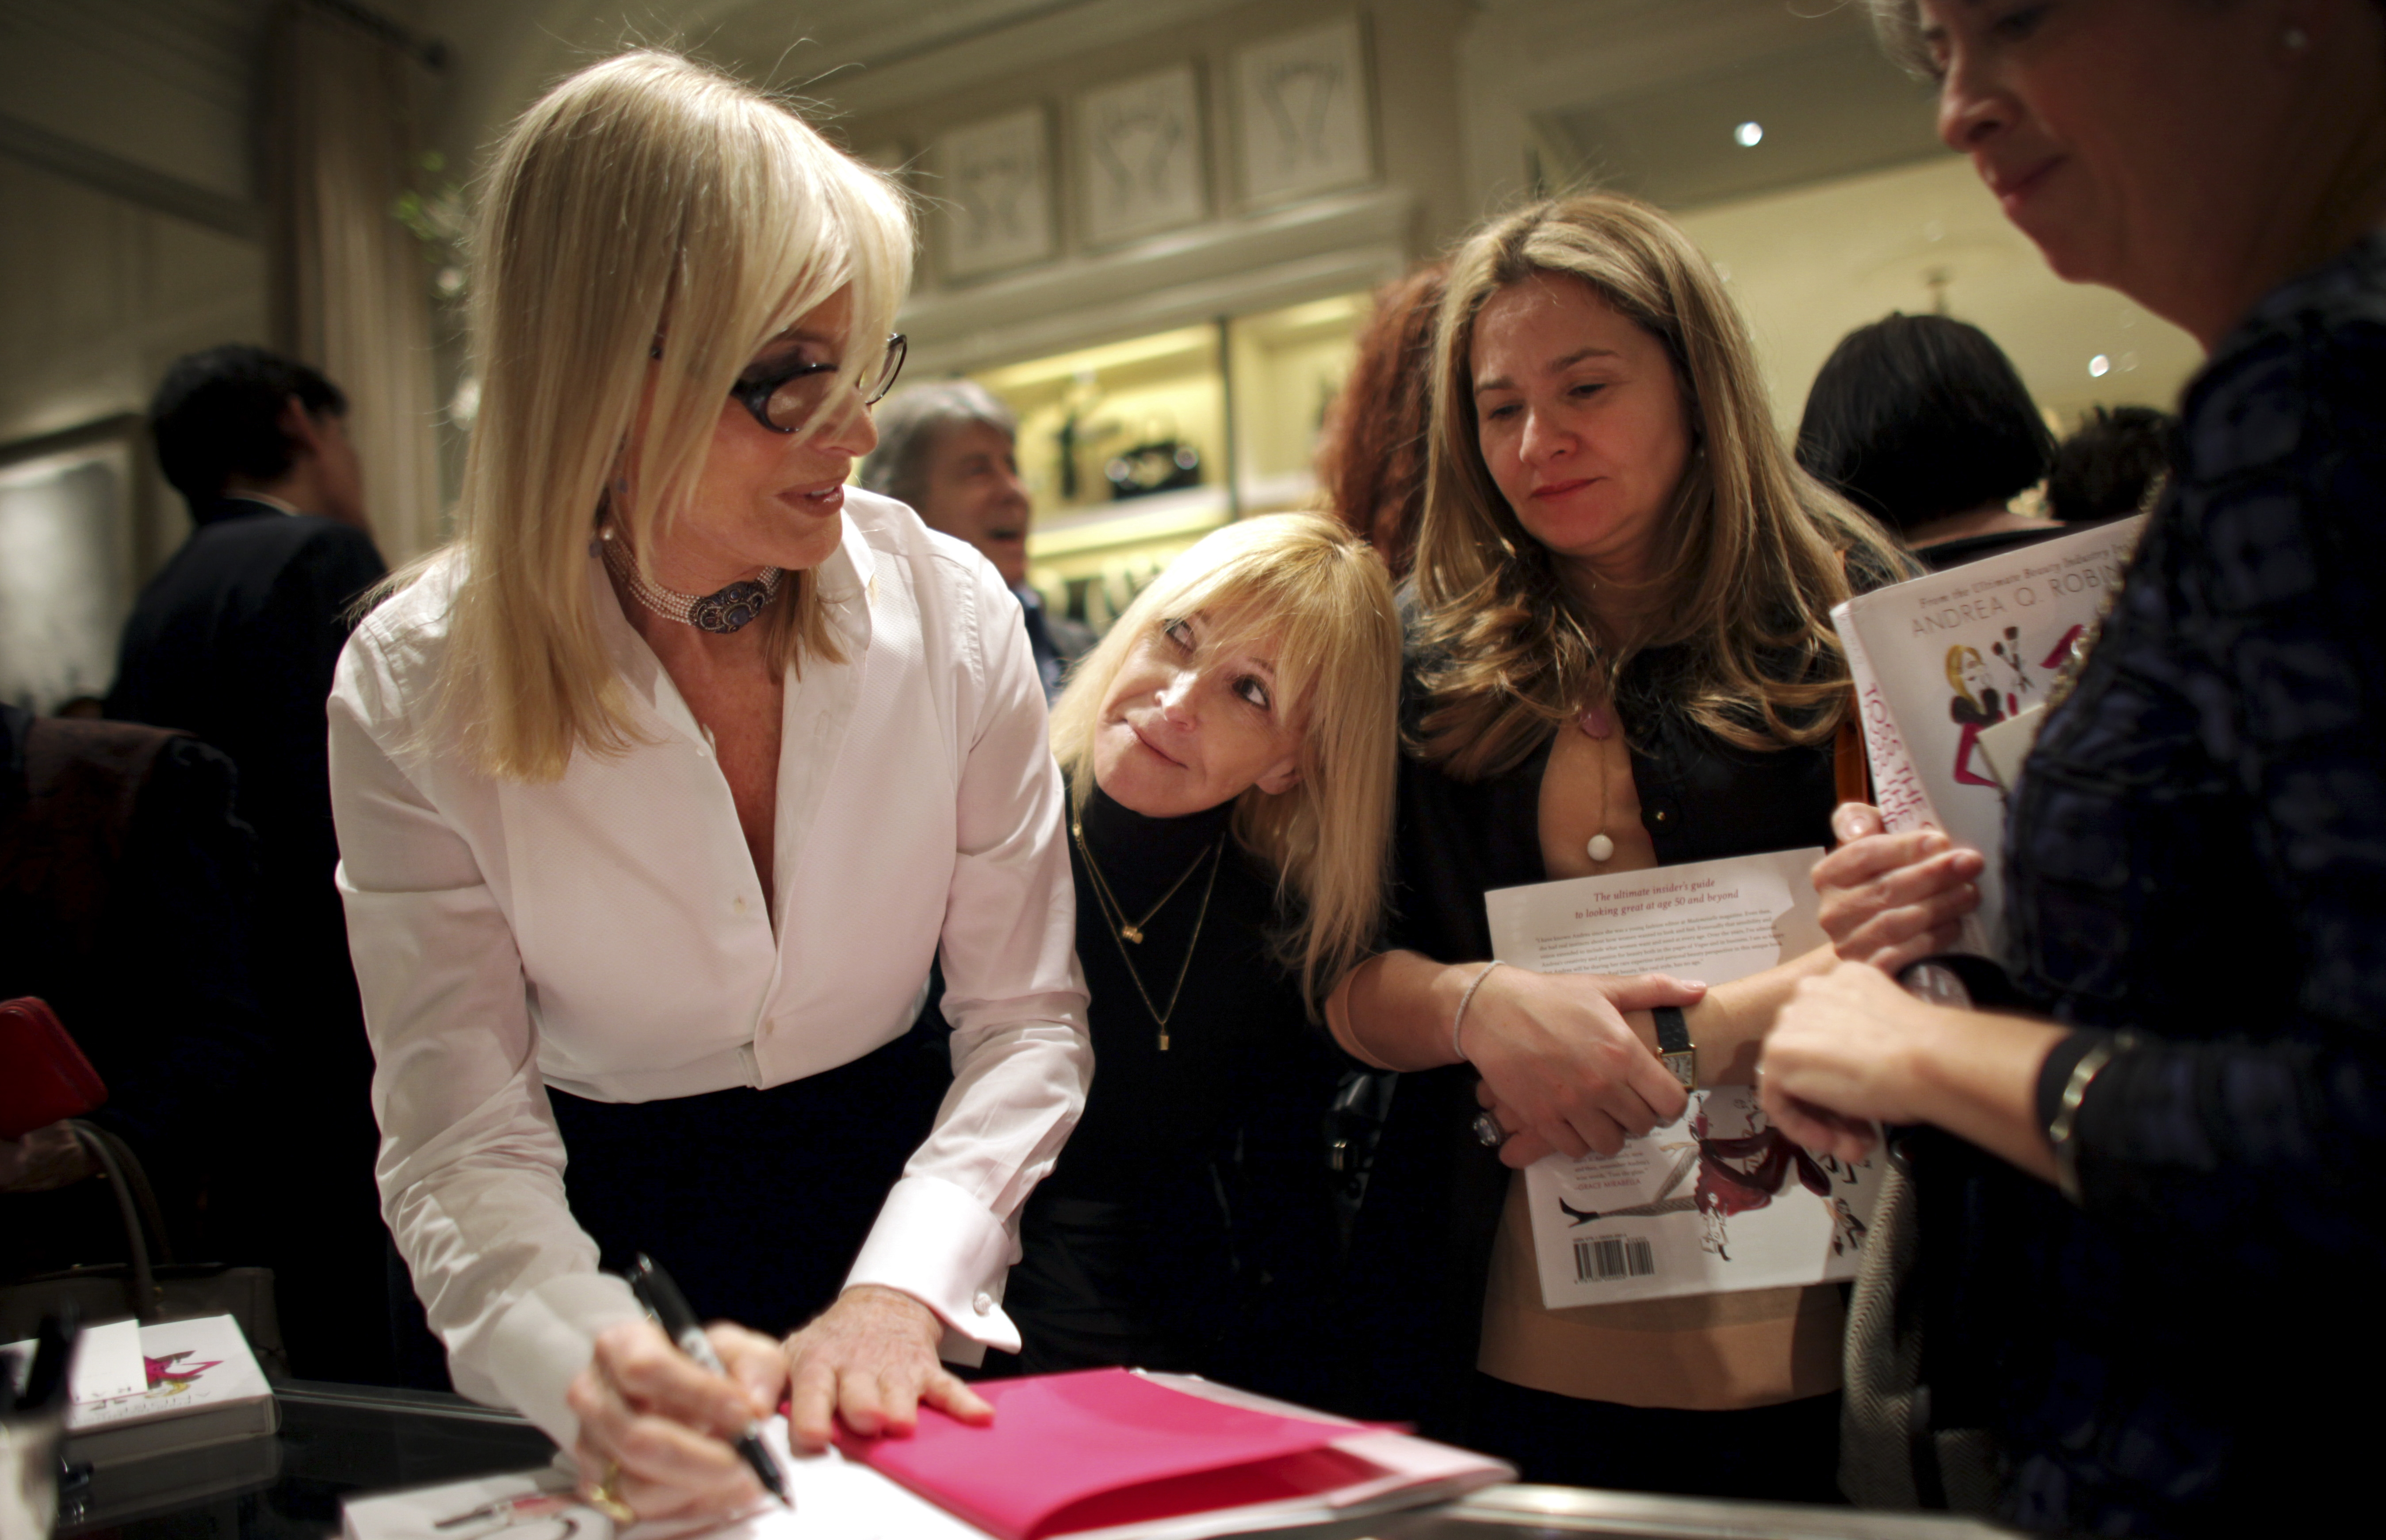 """Andrea Robinson, a cosmetics industry veteran, signs copies of her new book, """"Toss the Gloss: Beauty Tips, Tricks and Truths for Women 50+,"""" during a party earlier this month in New York."""